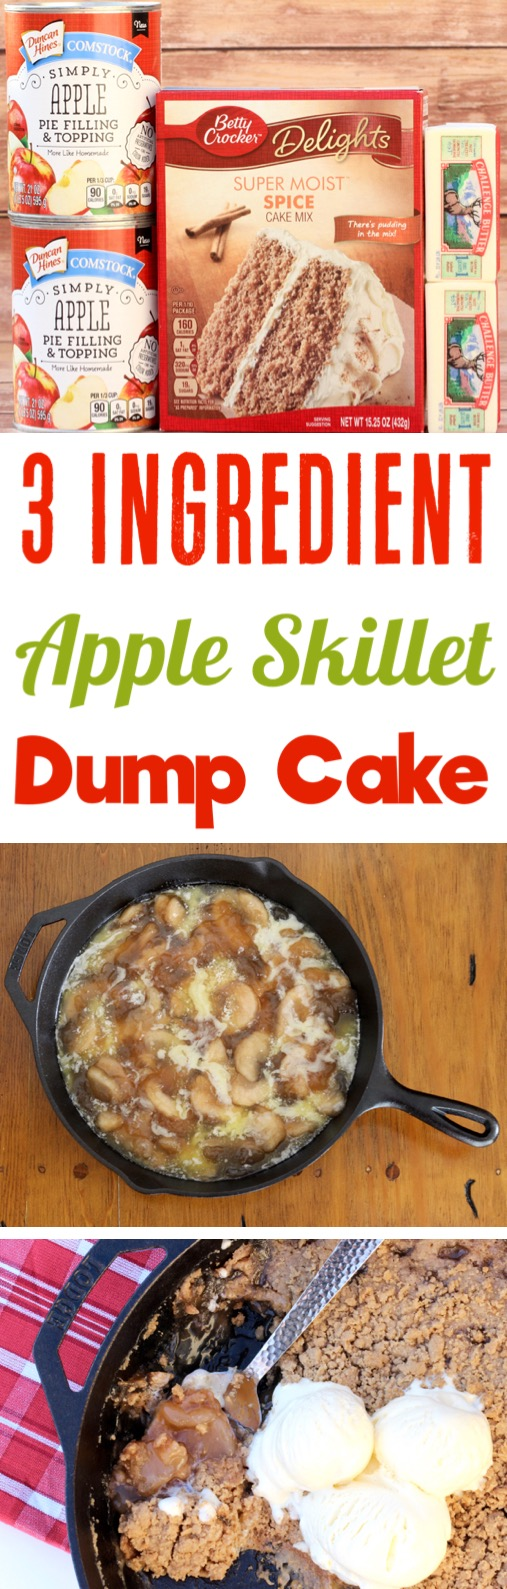 Apple Dump Cake Recipe Easy